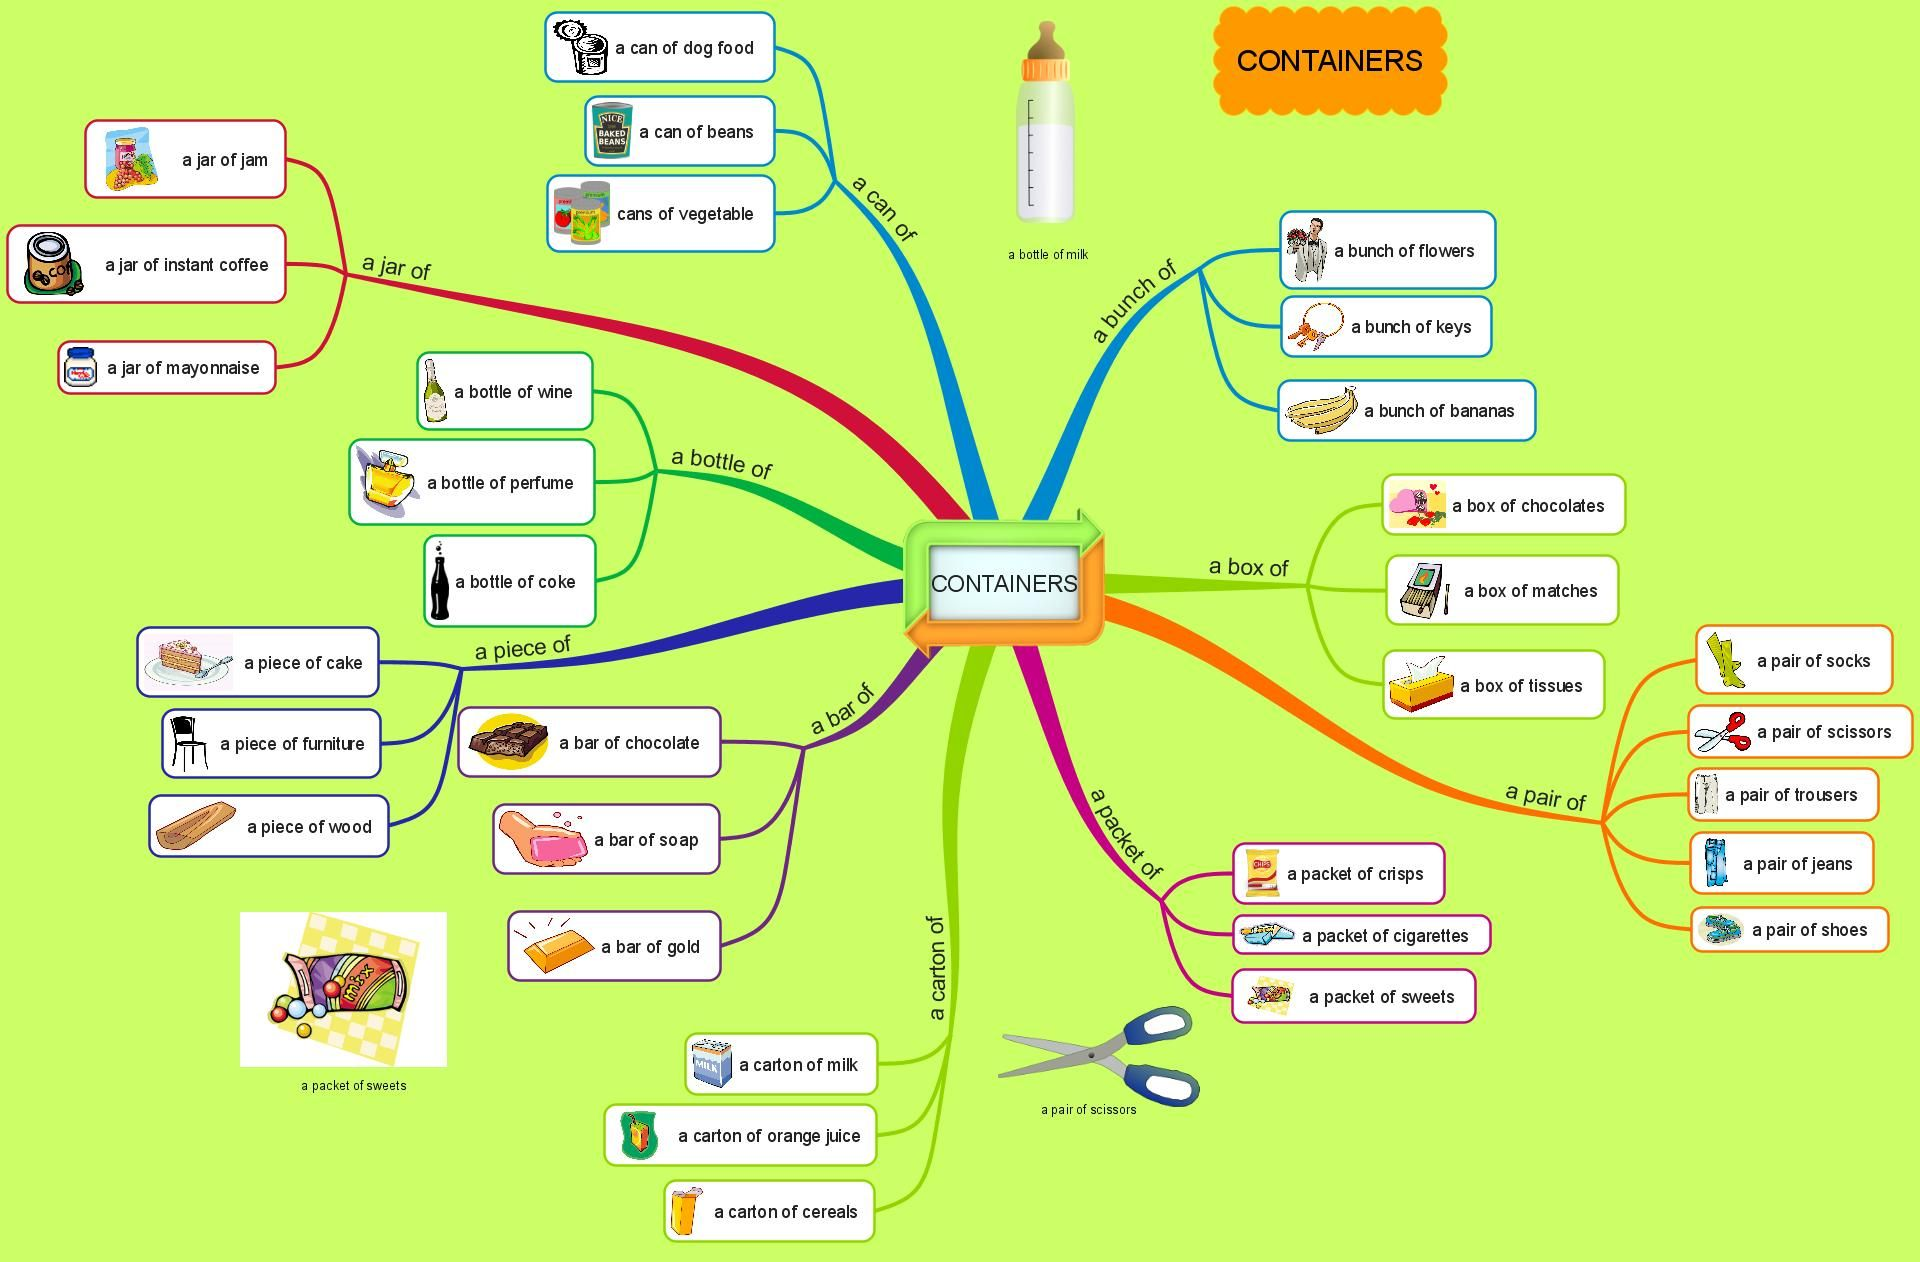 Containers Mind Map And Games